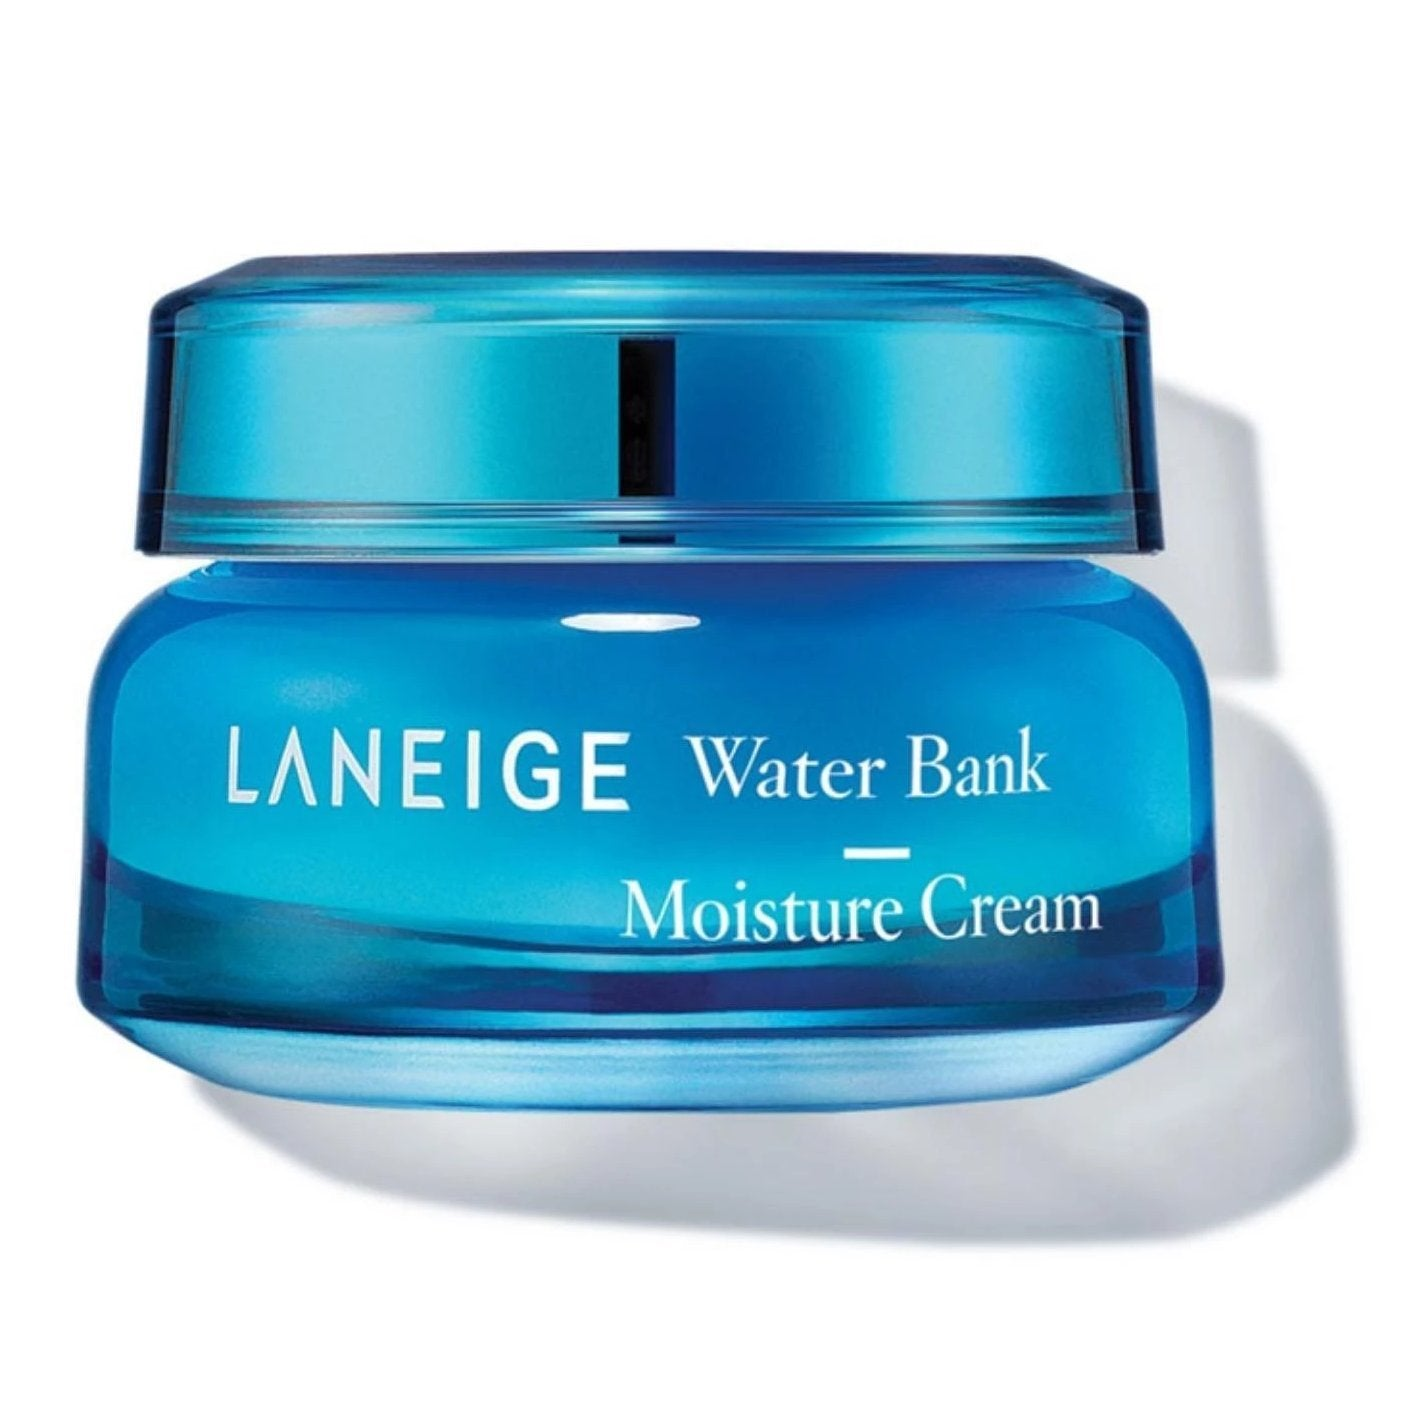 Water Bank Moisture Cream Laneige Creme Viso